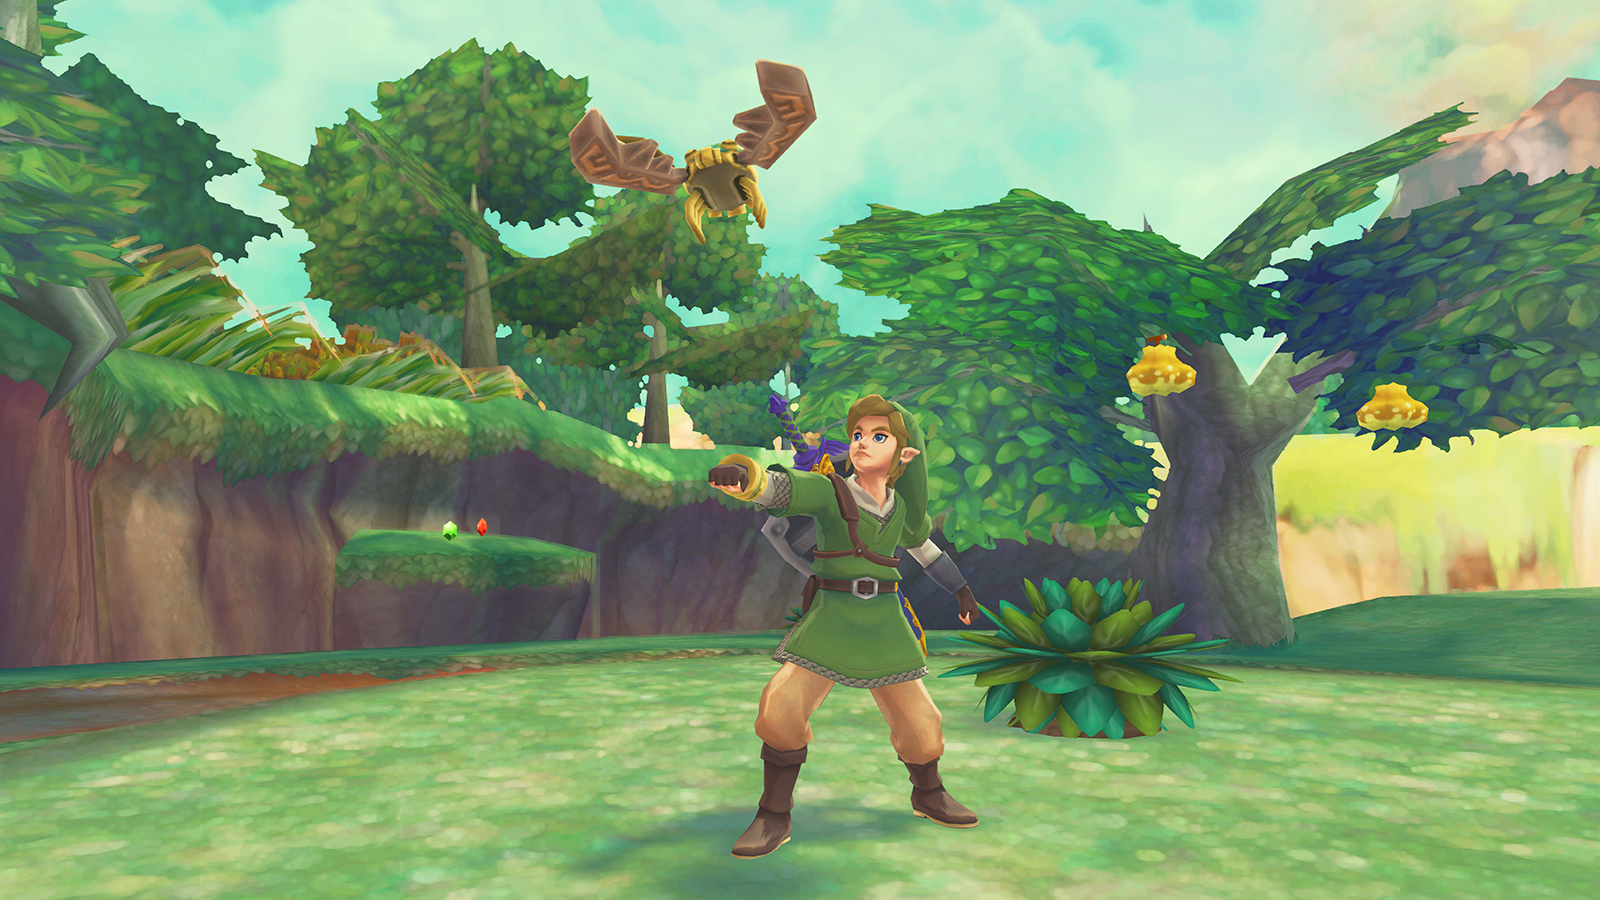 Skyward Sword combines the cel-shaded look of Wind Waker with the characters of Twilight Princess.